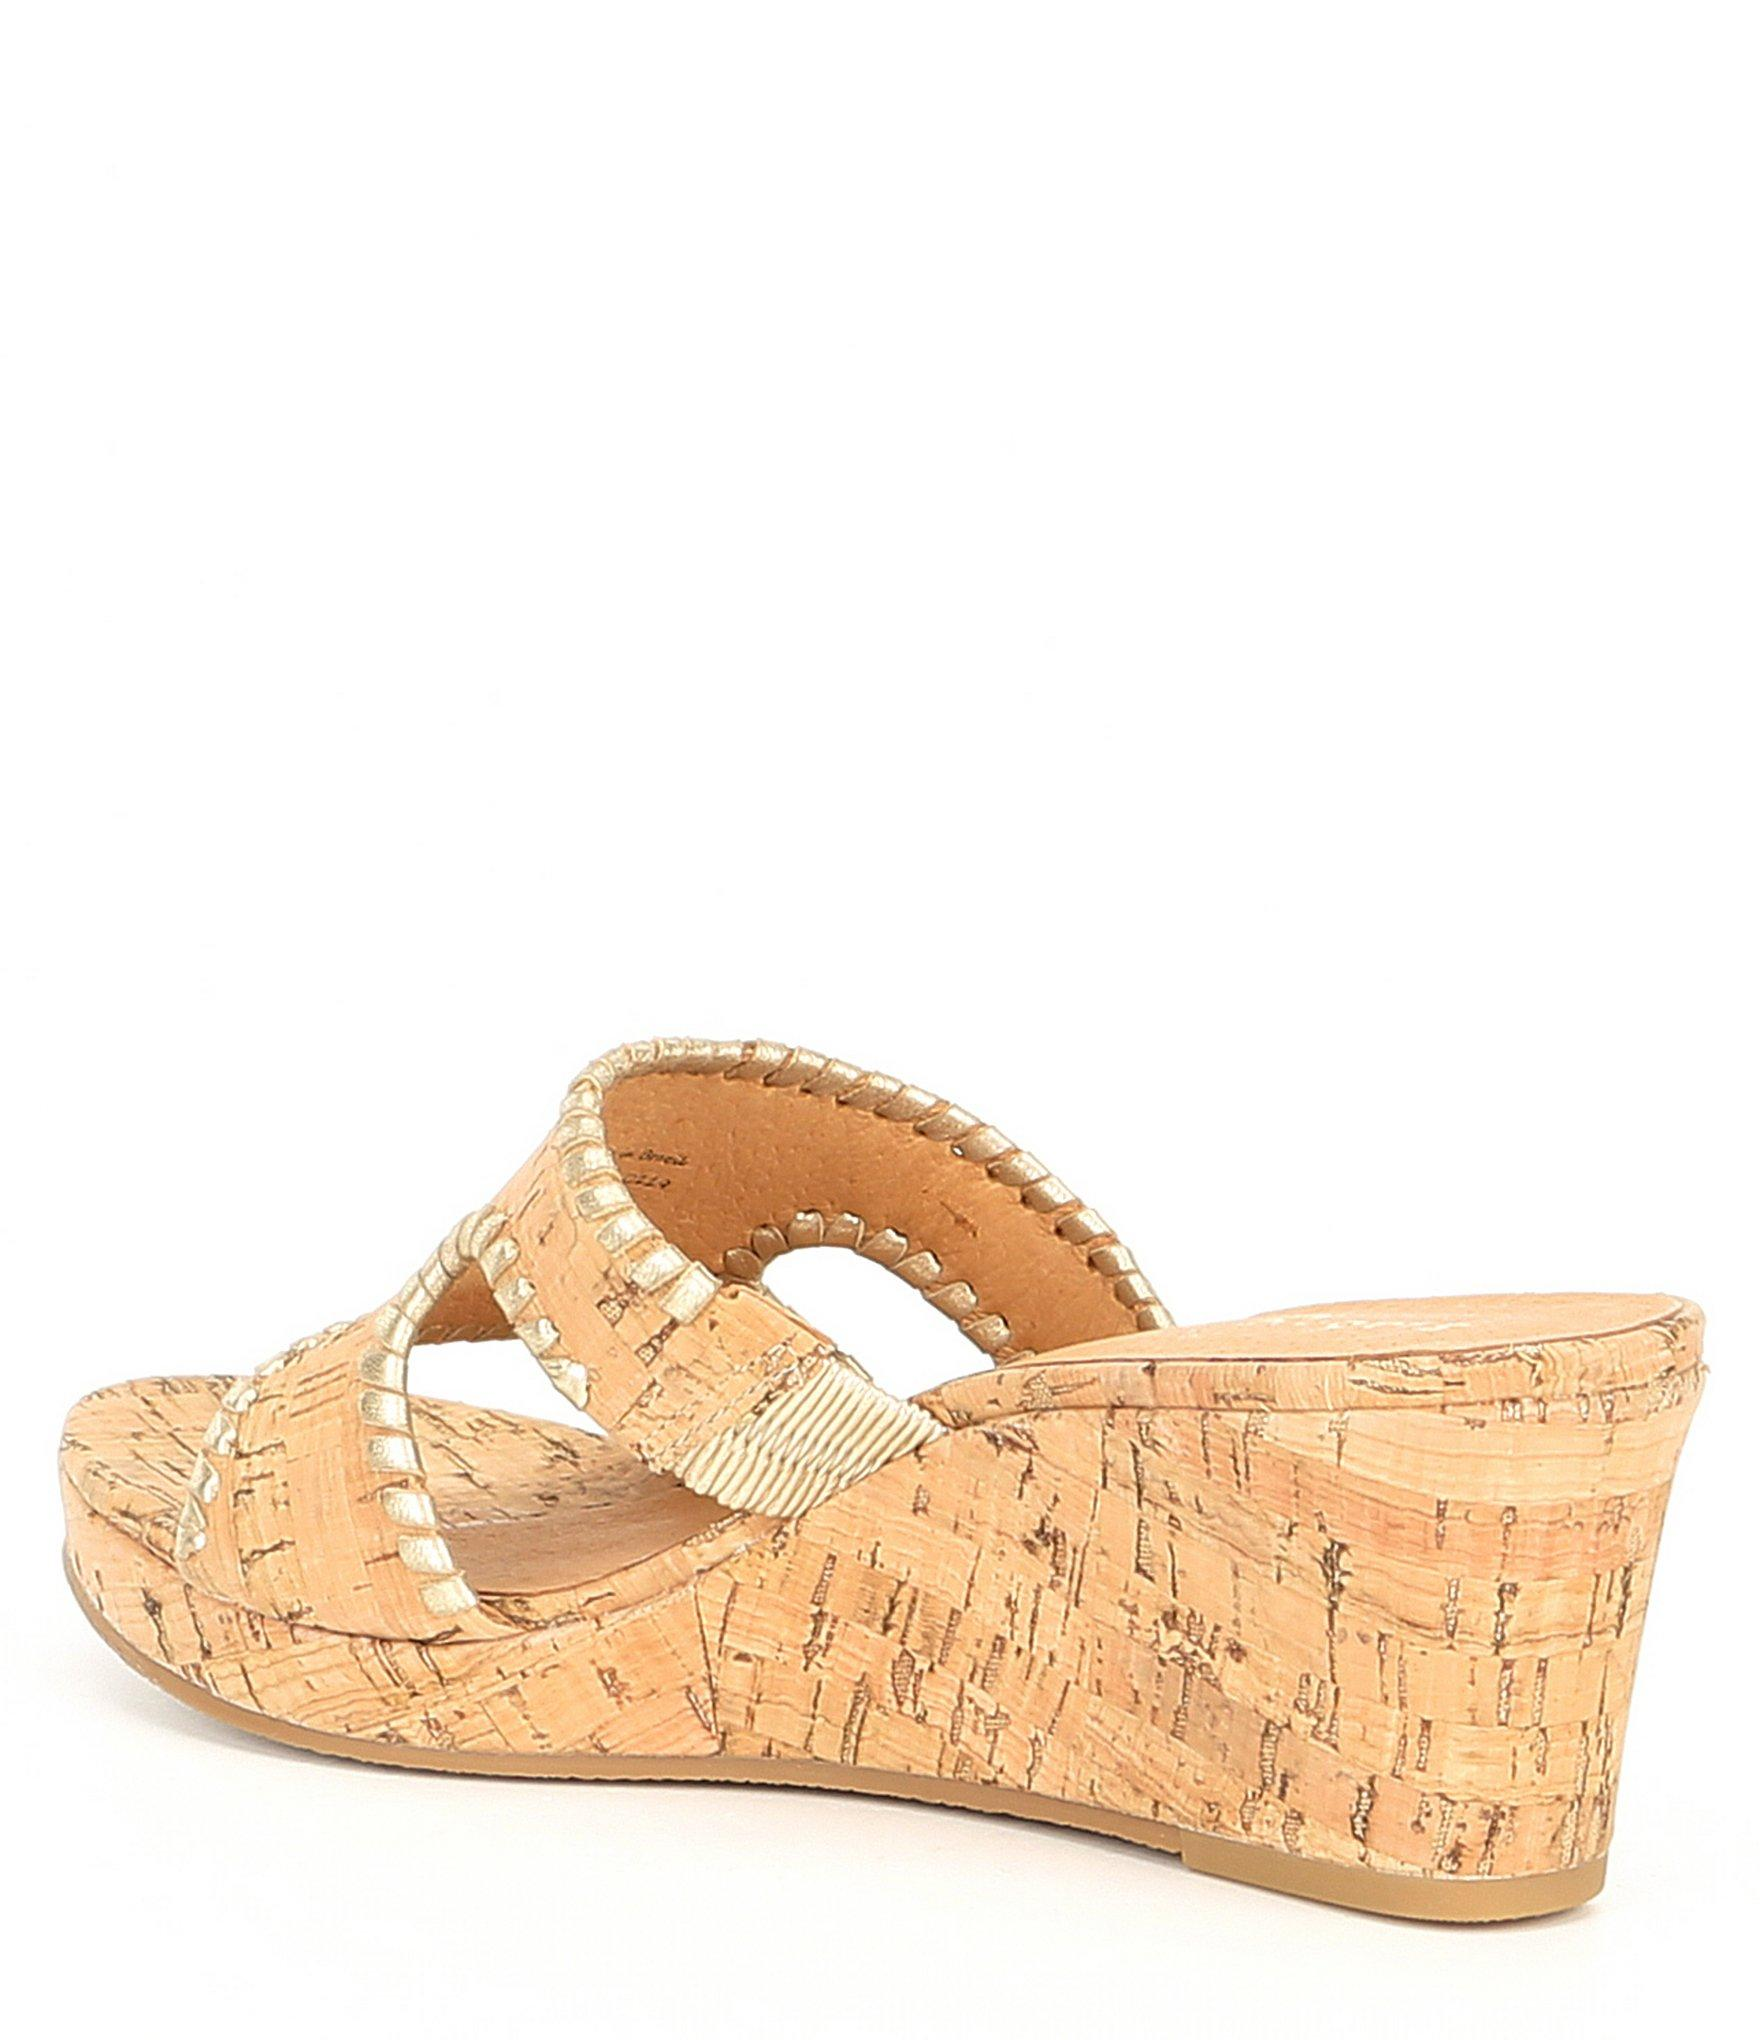 b04c228784c8 Jack Rogers - Multicolor Sloane Leather And Cork Mid Wedges - Lyst. View  fullscreen